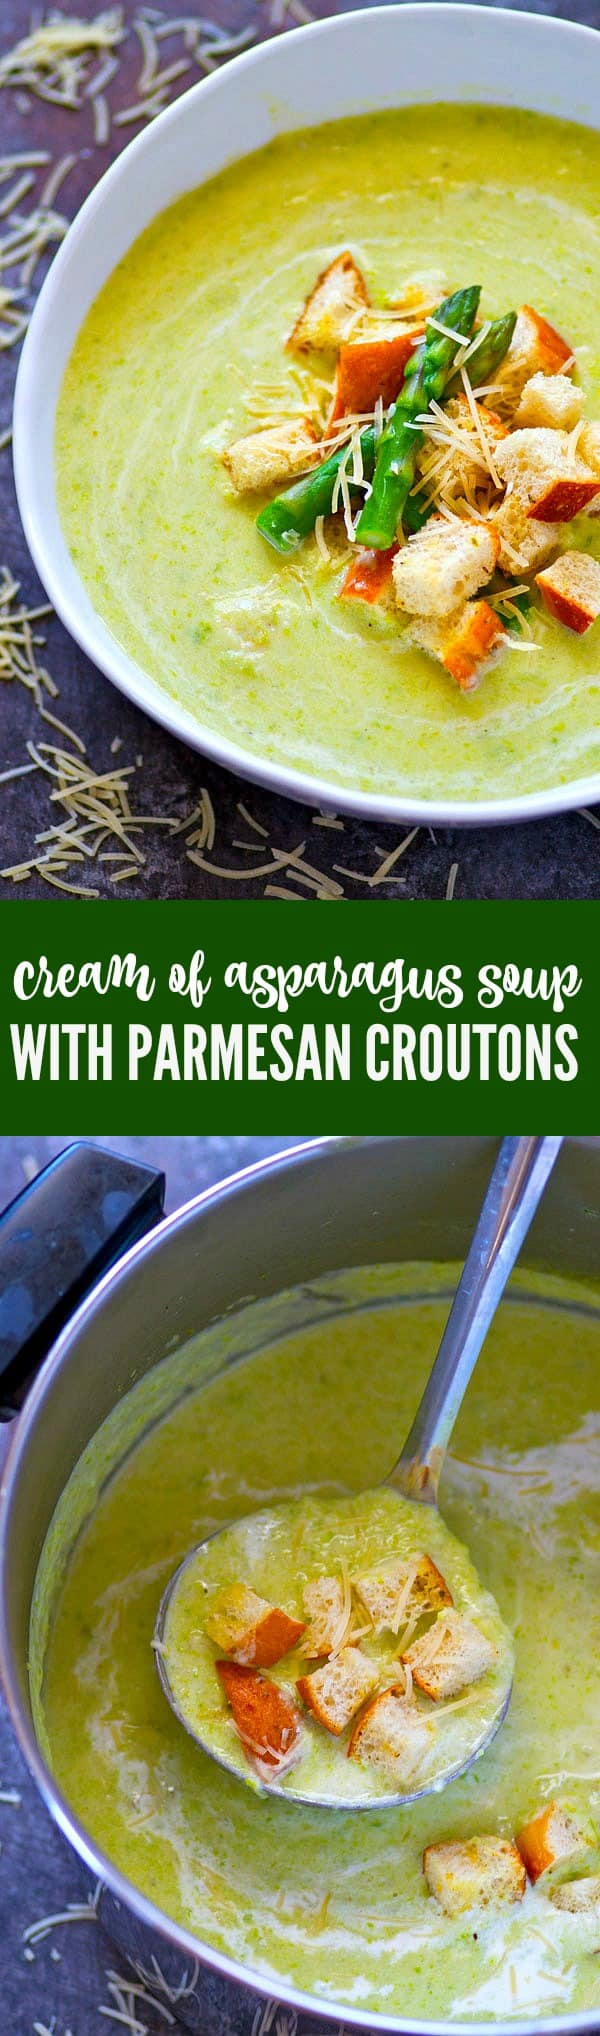 Insanely creamy, yet light cream of asparagus soup is a DREAM paired with crispy Parmesan croutons piled on top! This soup is perfect for using up all that asparagus.